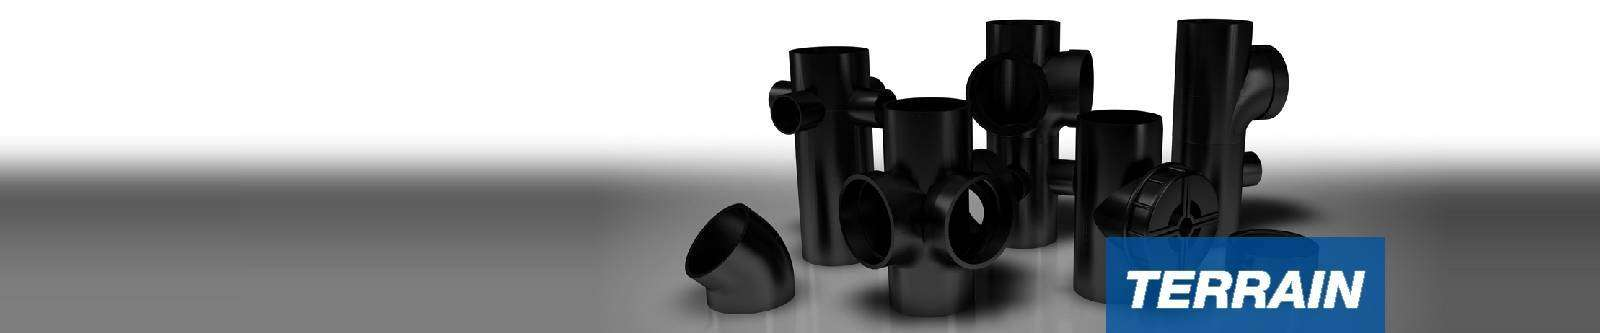 Polypipe Terrain commercial and public buildings drainage and supply pipe systems HDPE